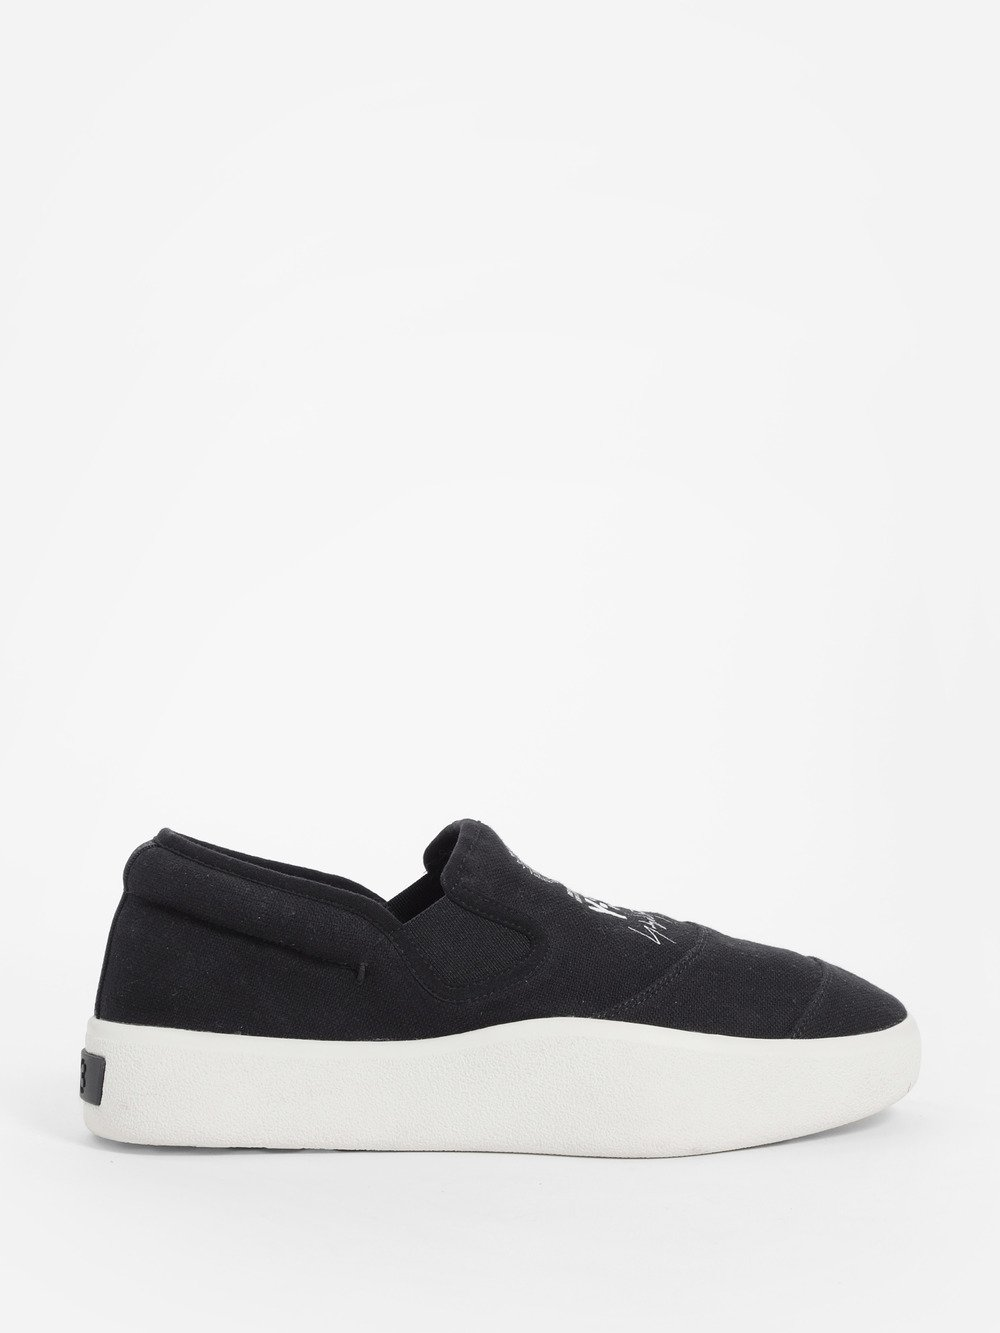 Tangutsu Sneakers in Black